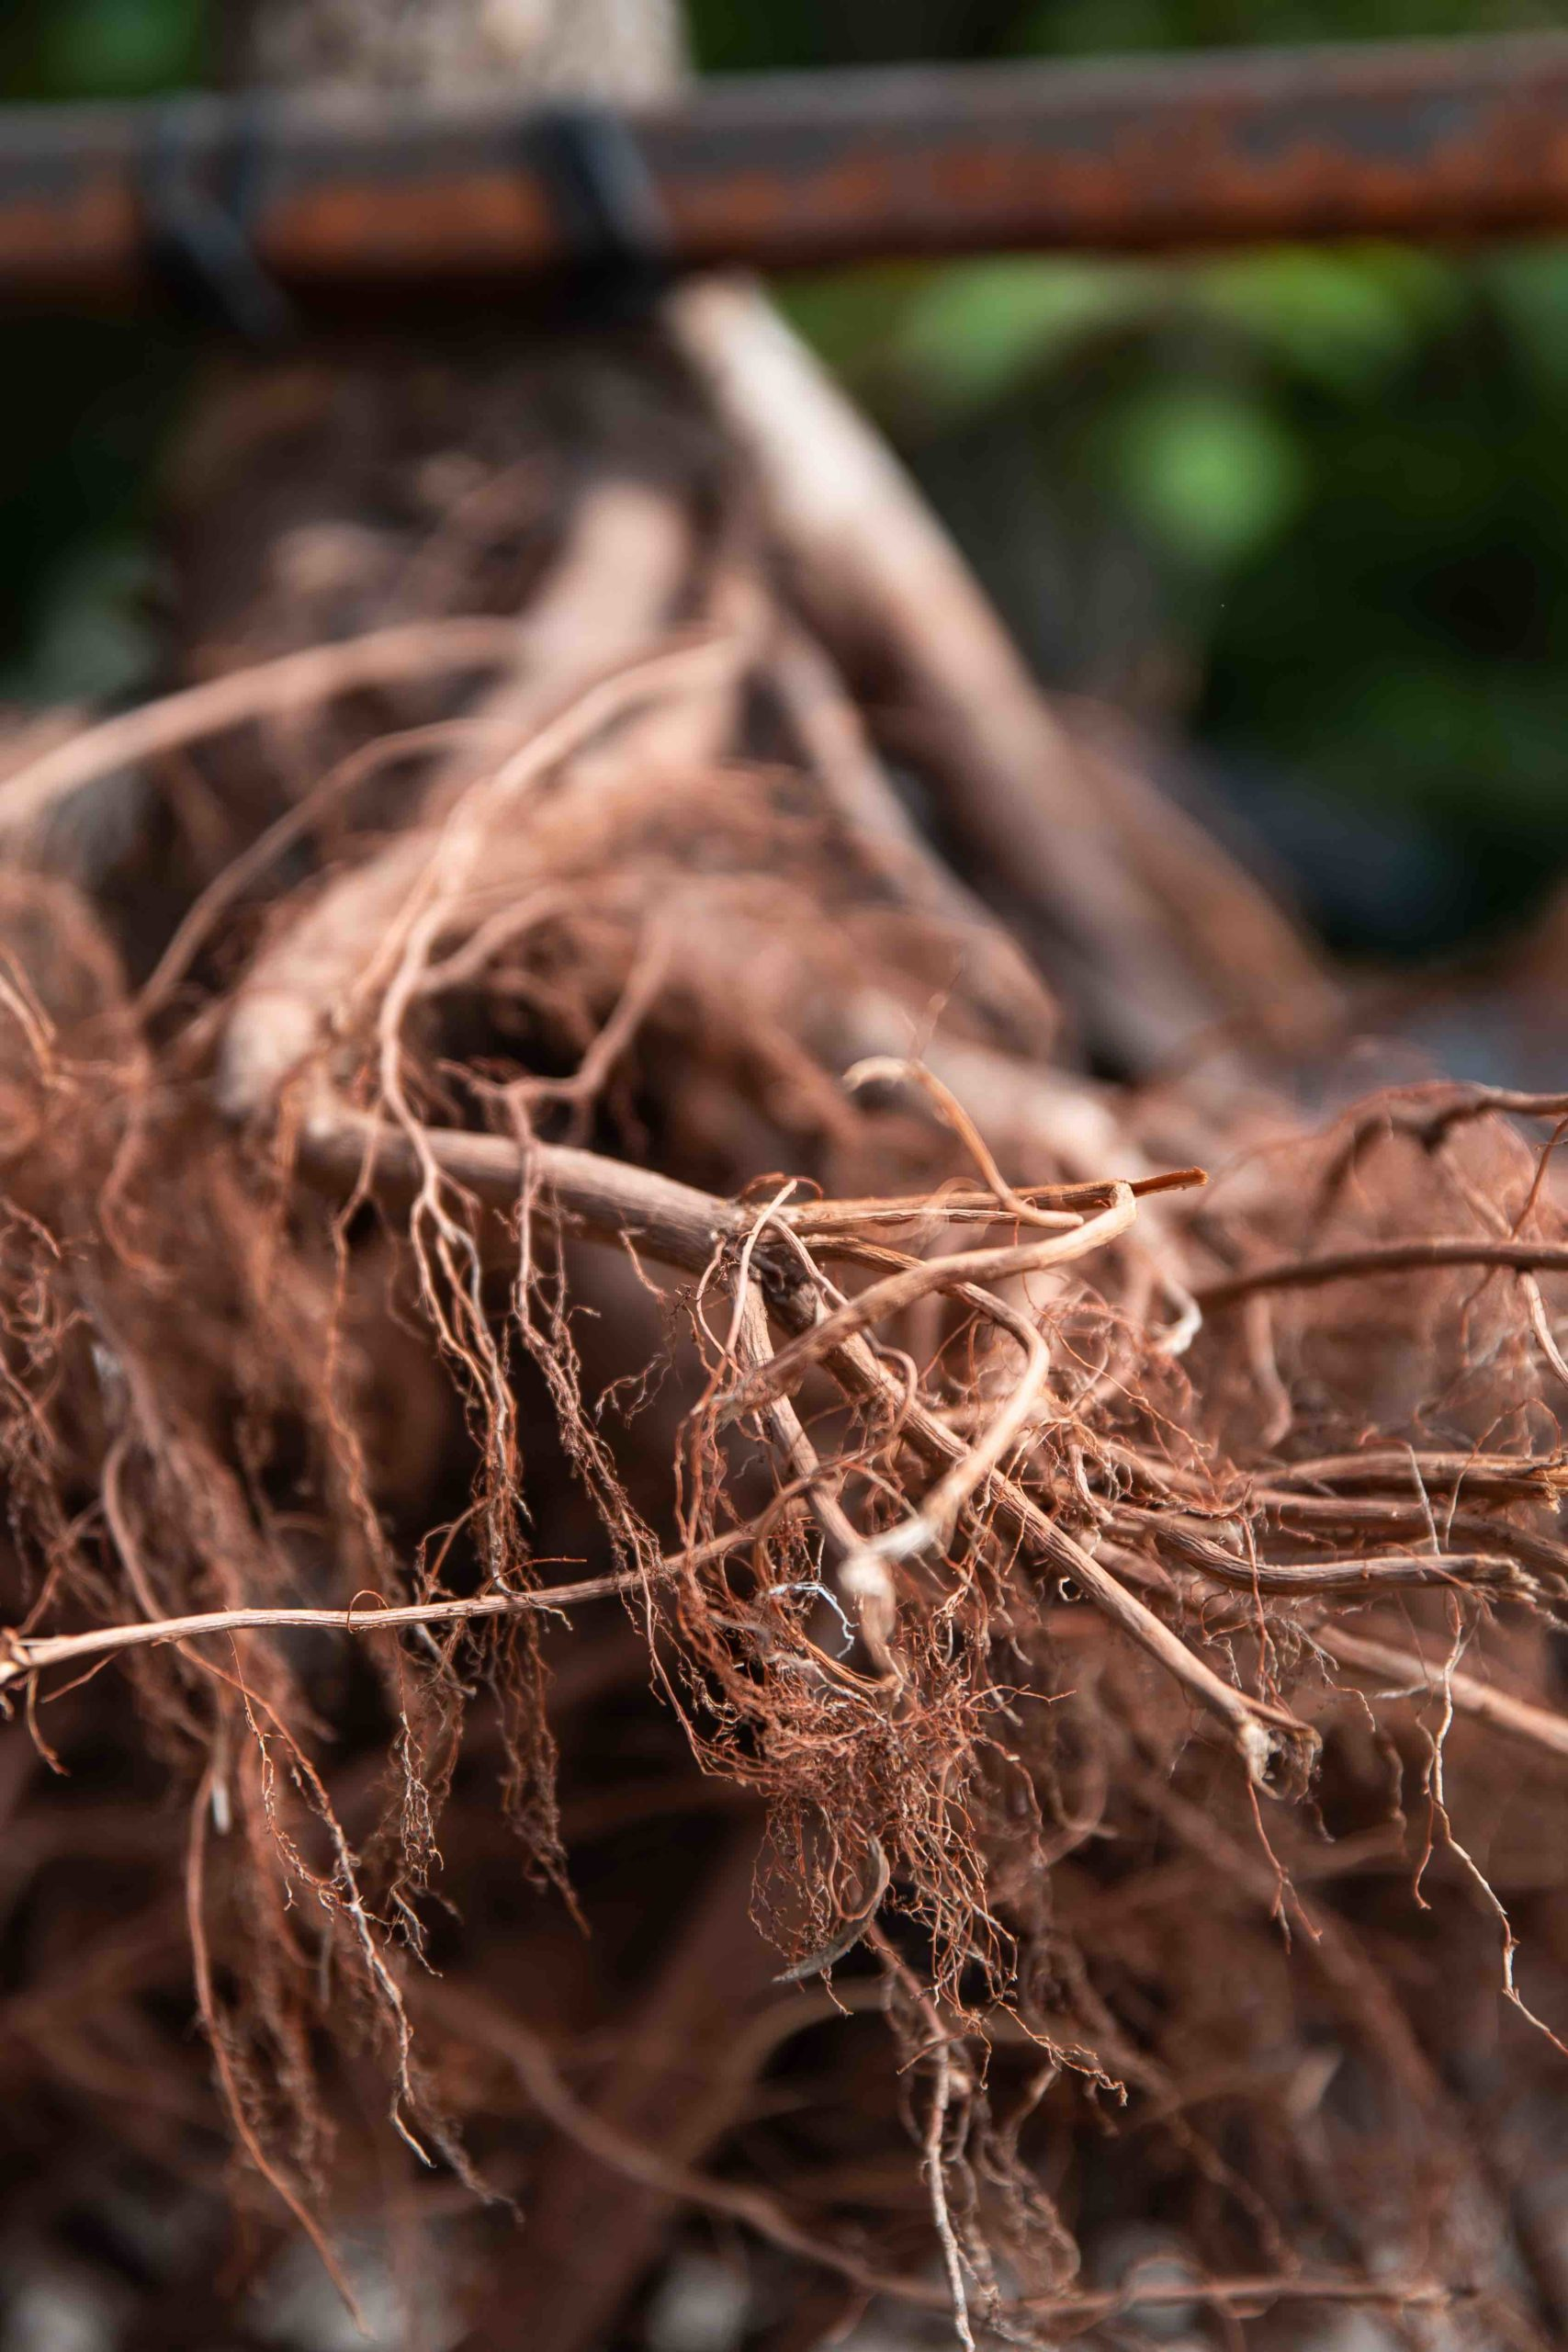 root pruning is a regenerative agriculture practice